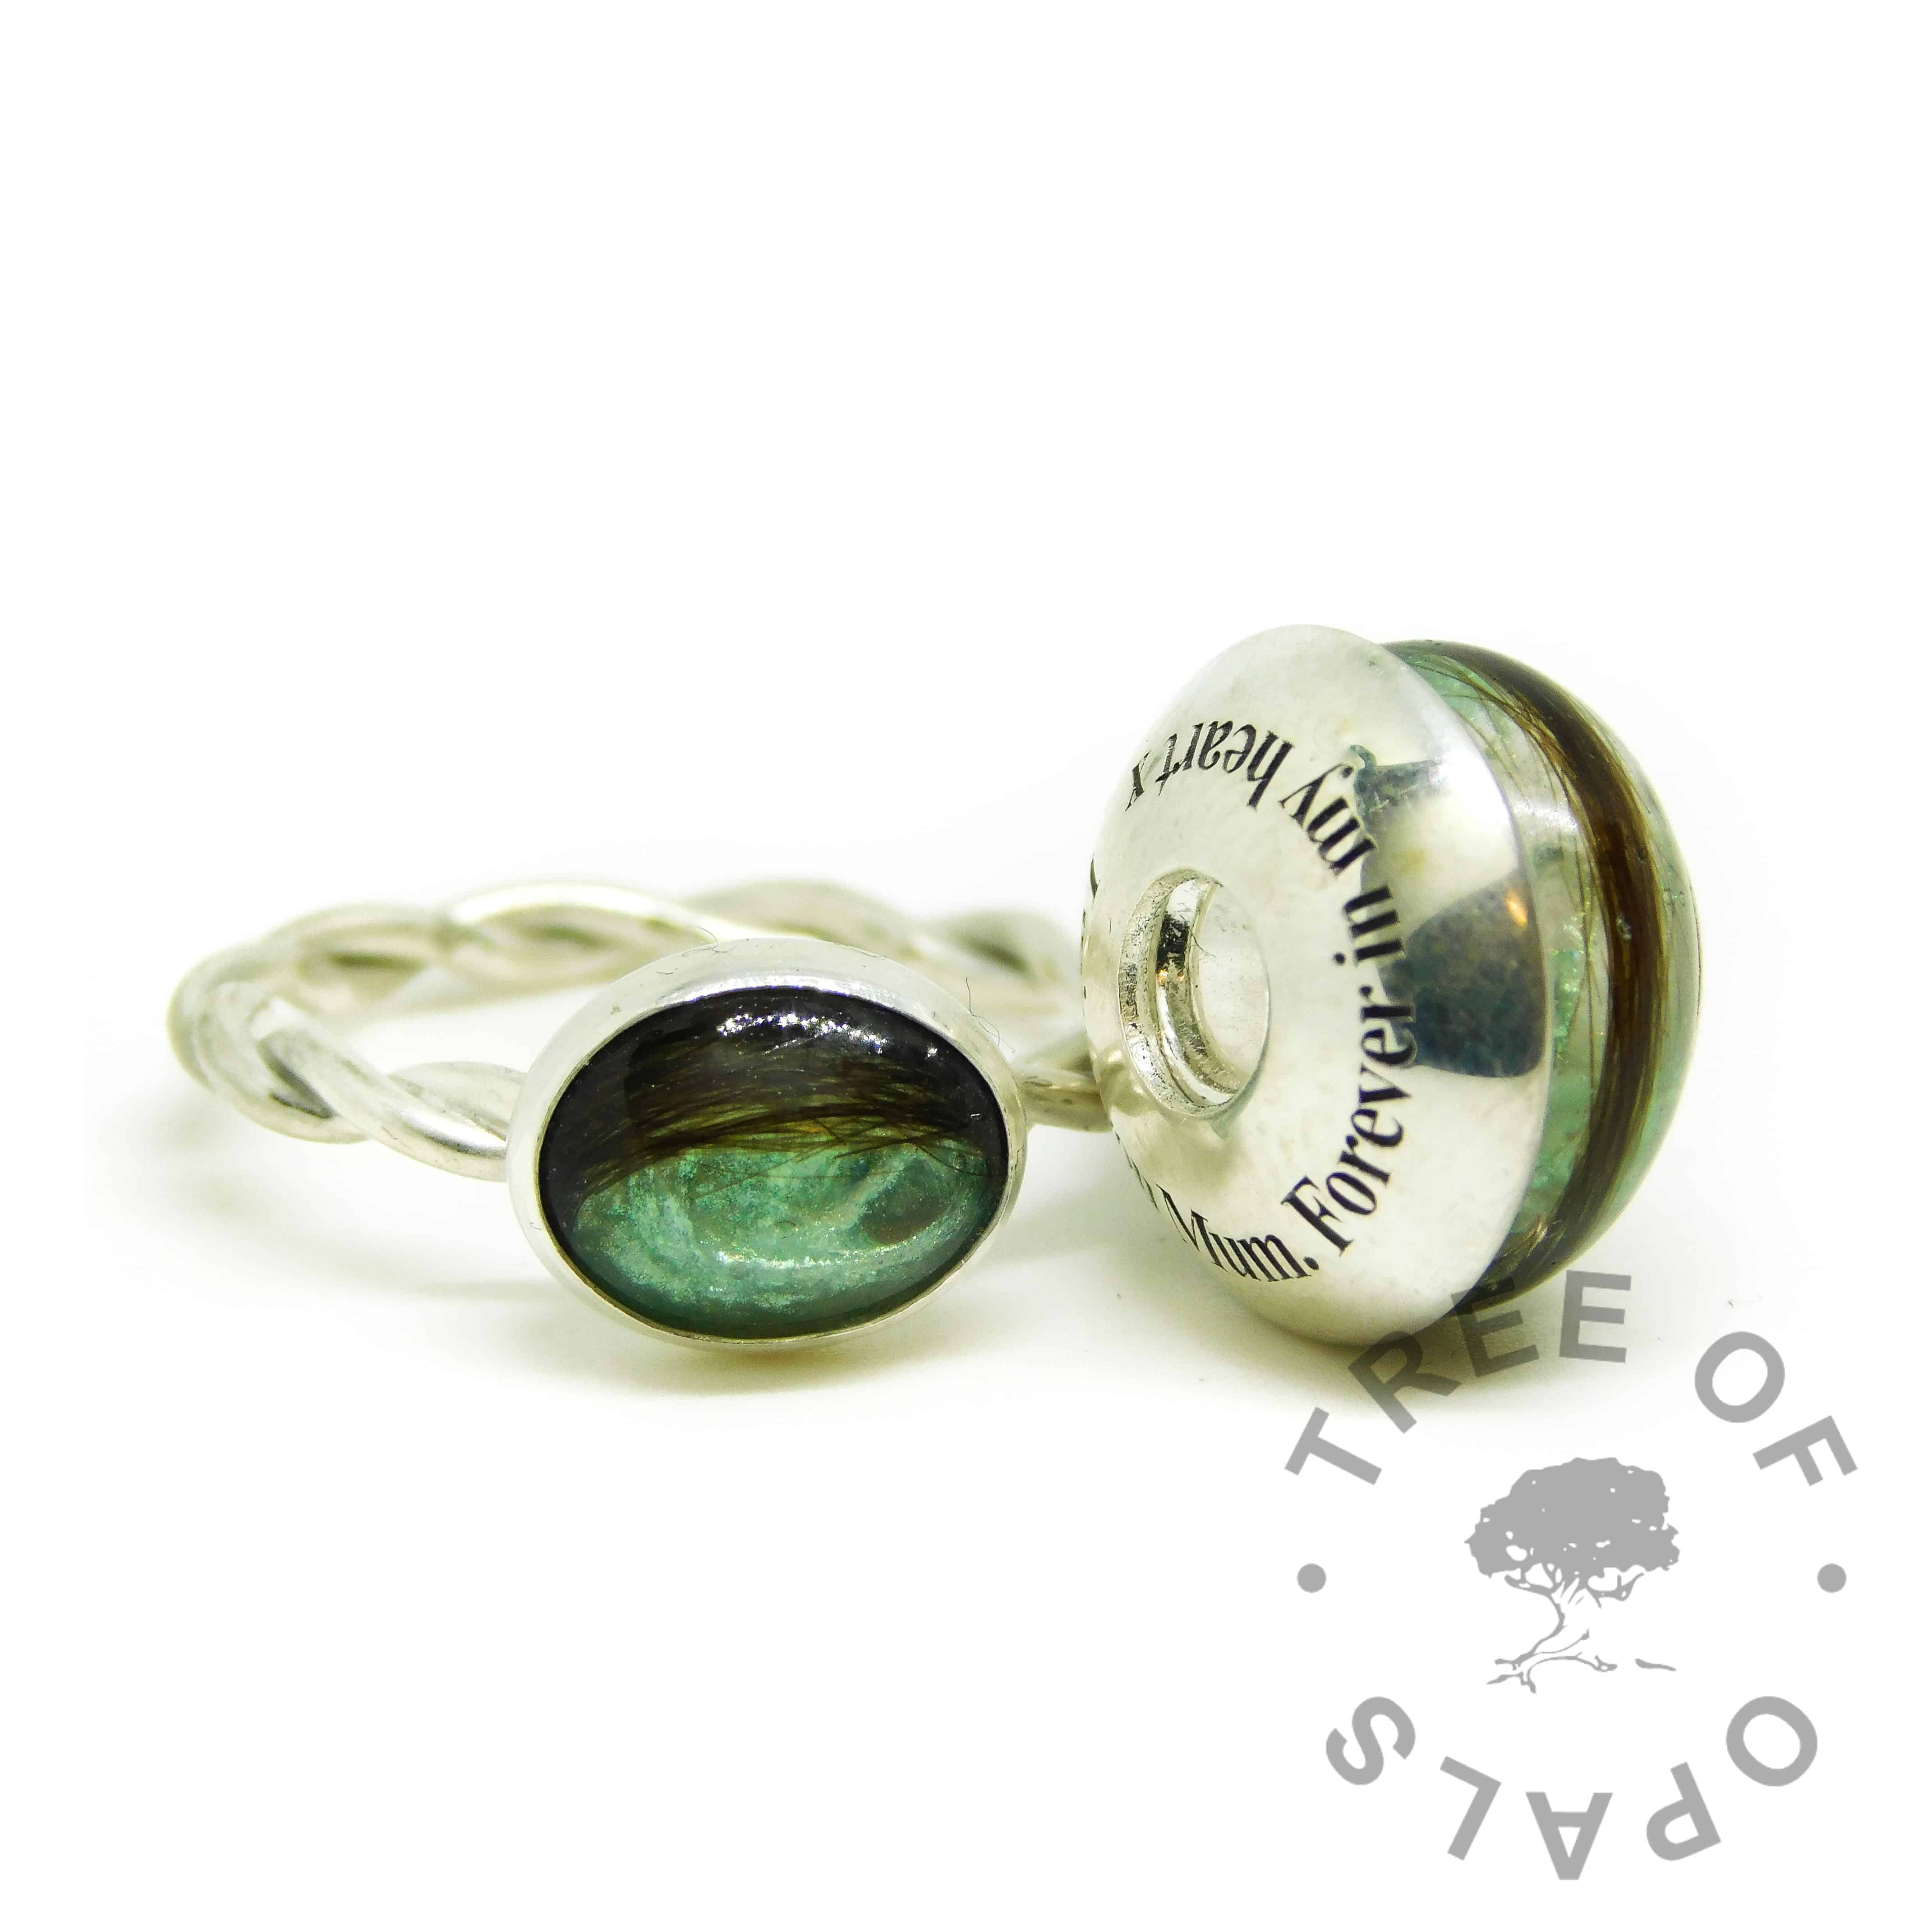 aqua hair charm, lock of hair charm bead and twisted band ring with Angelic aqua resin sparkle mix